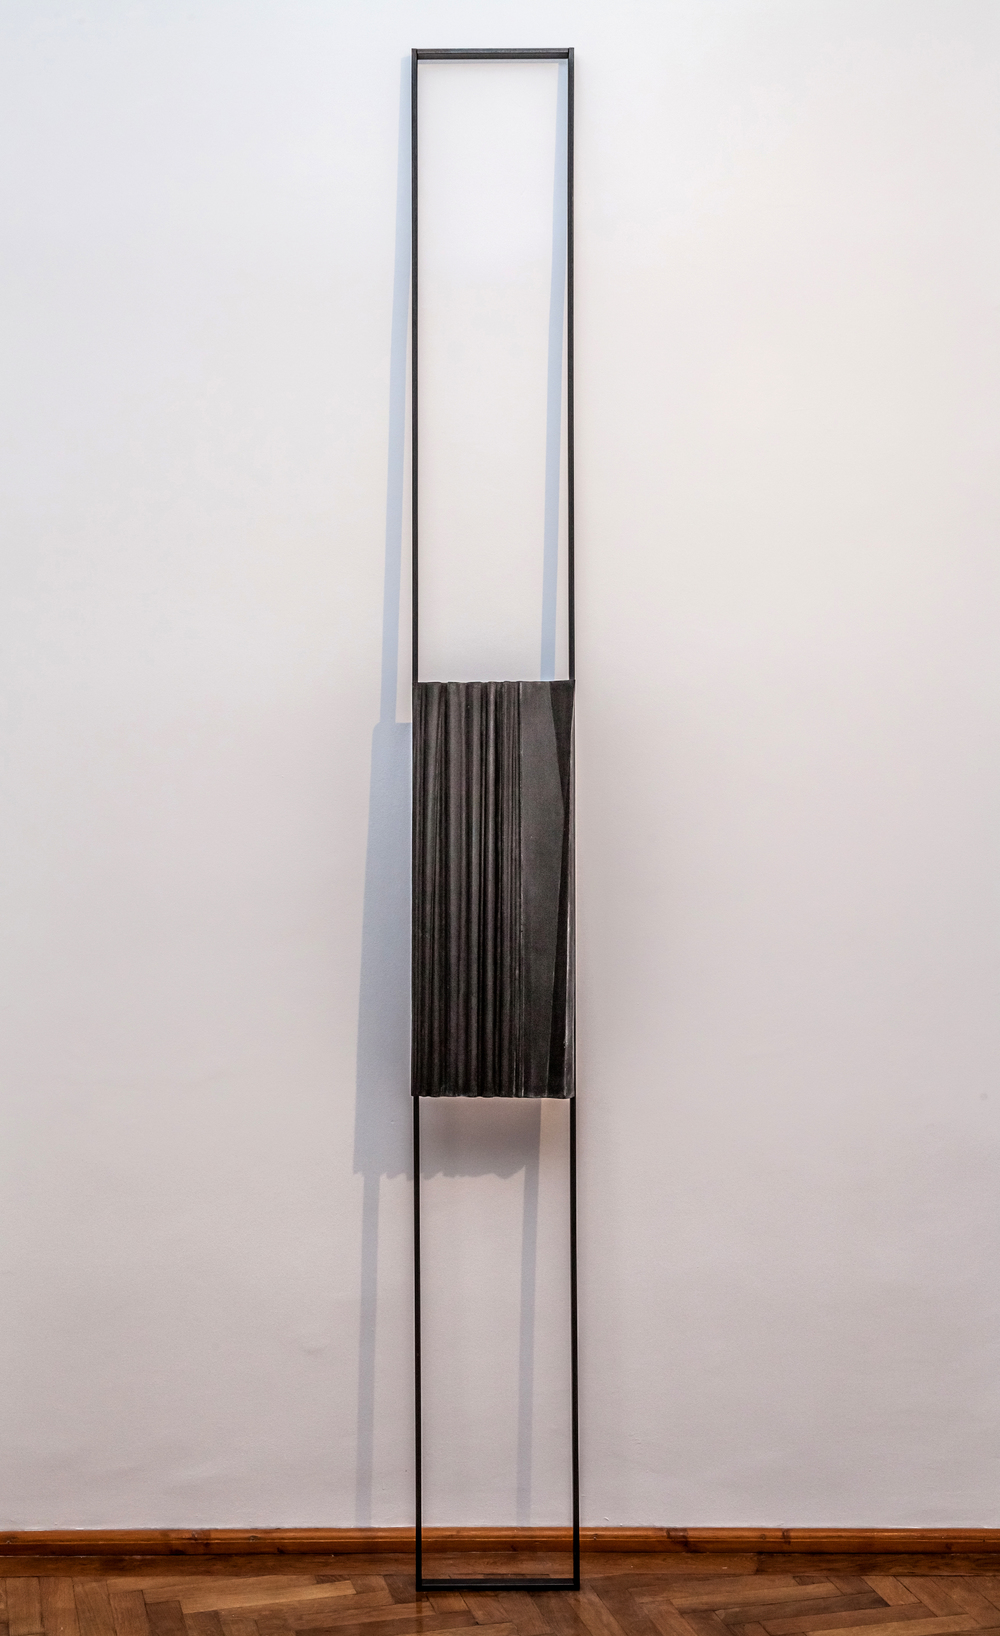 VERTICAL CURTAIN (2013) CONCRETE/METAL 273 X 29 X 8 CM